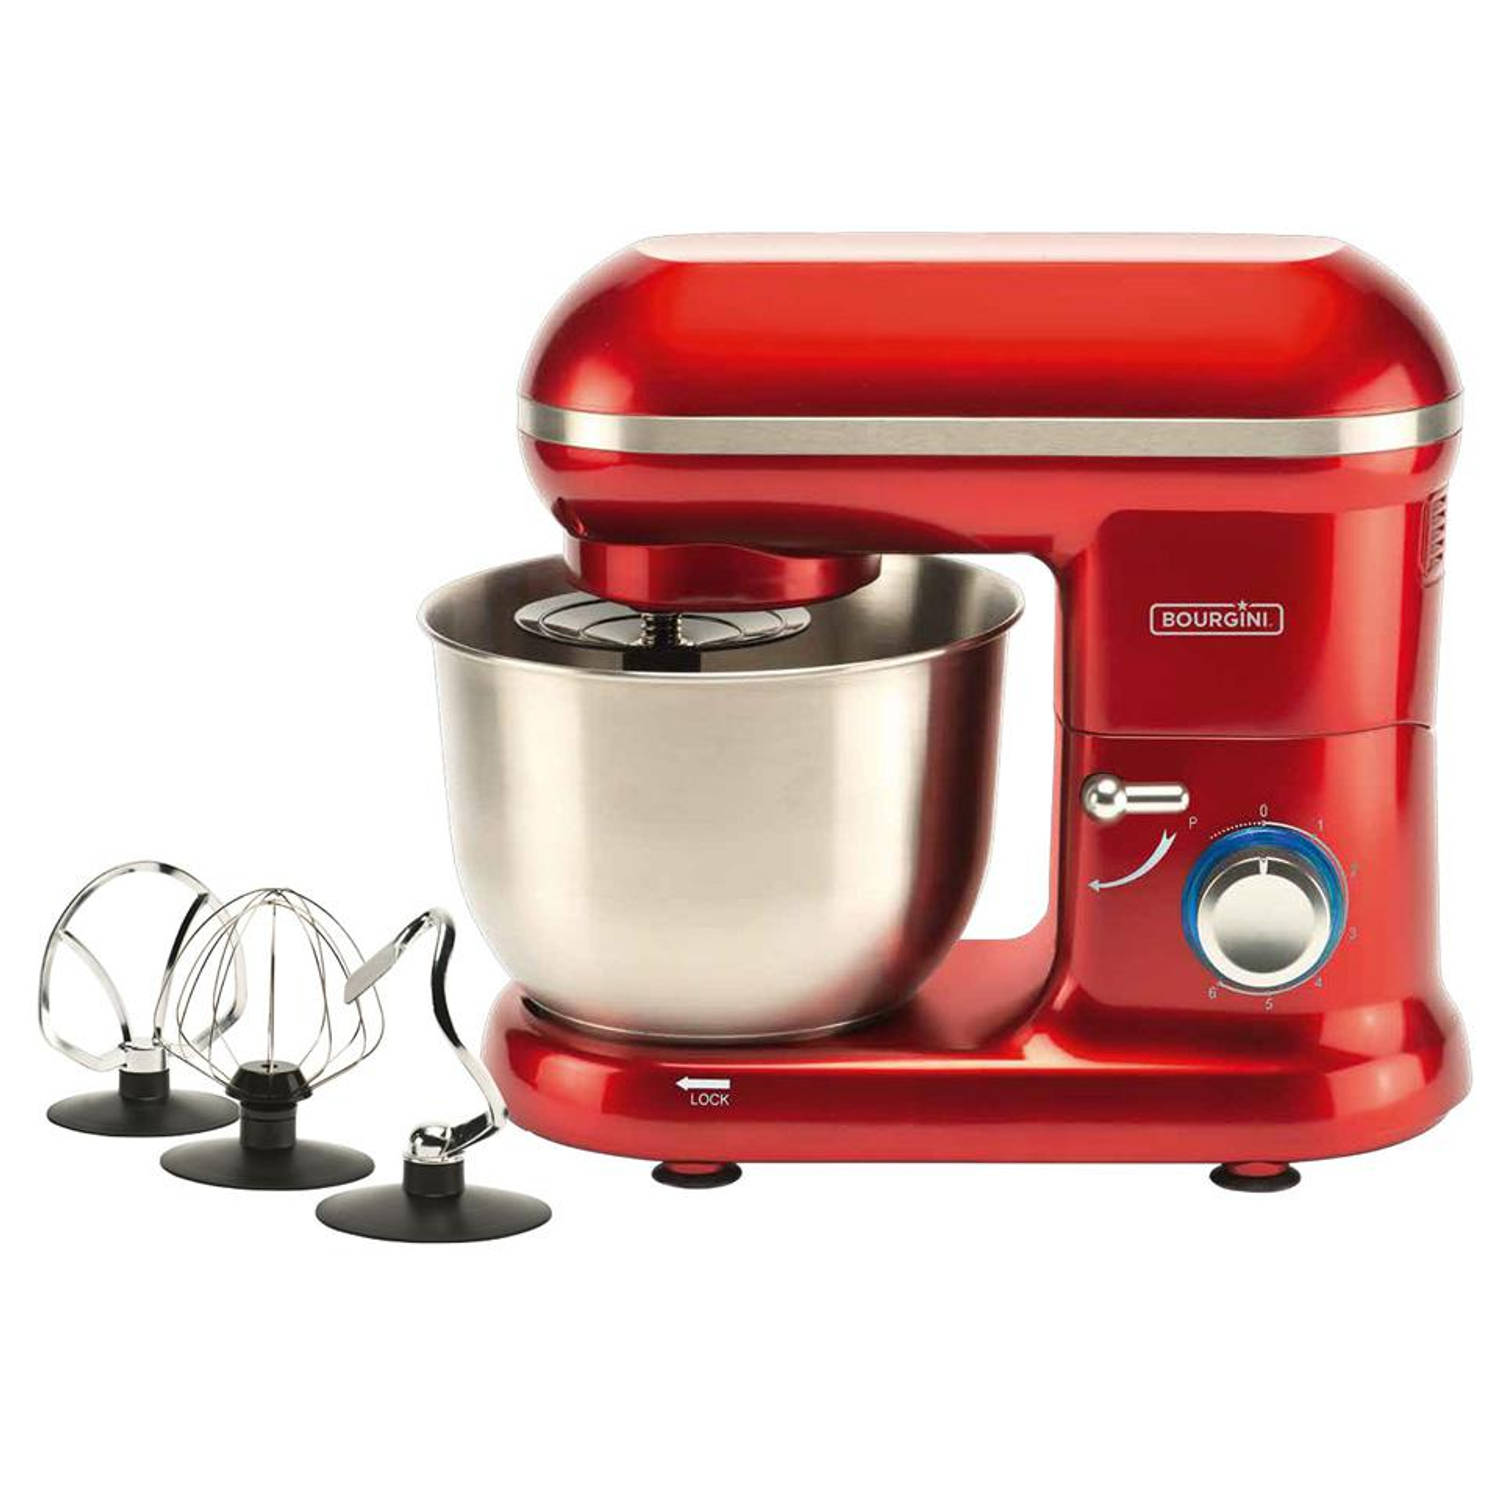 Foto Bourgini keukenmachine Classic Kitchen Chef - rood